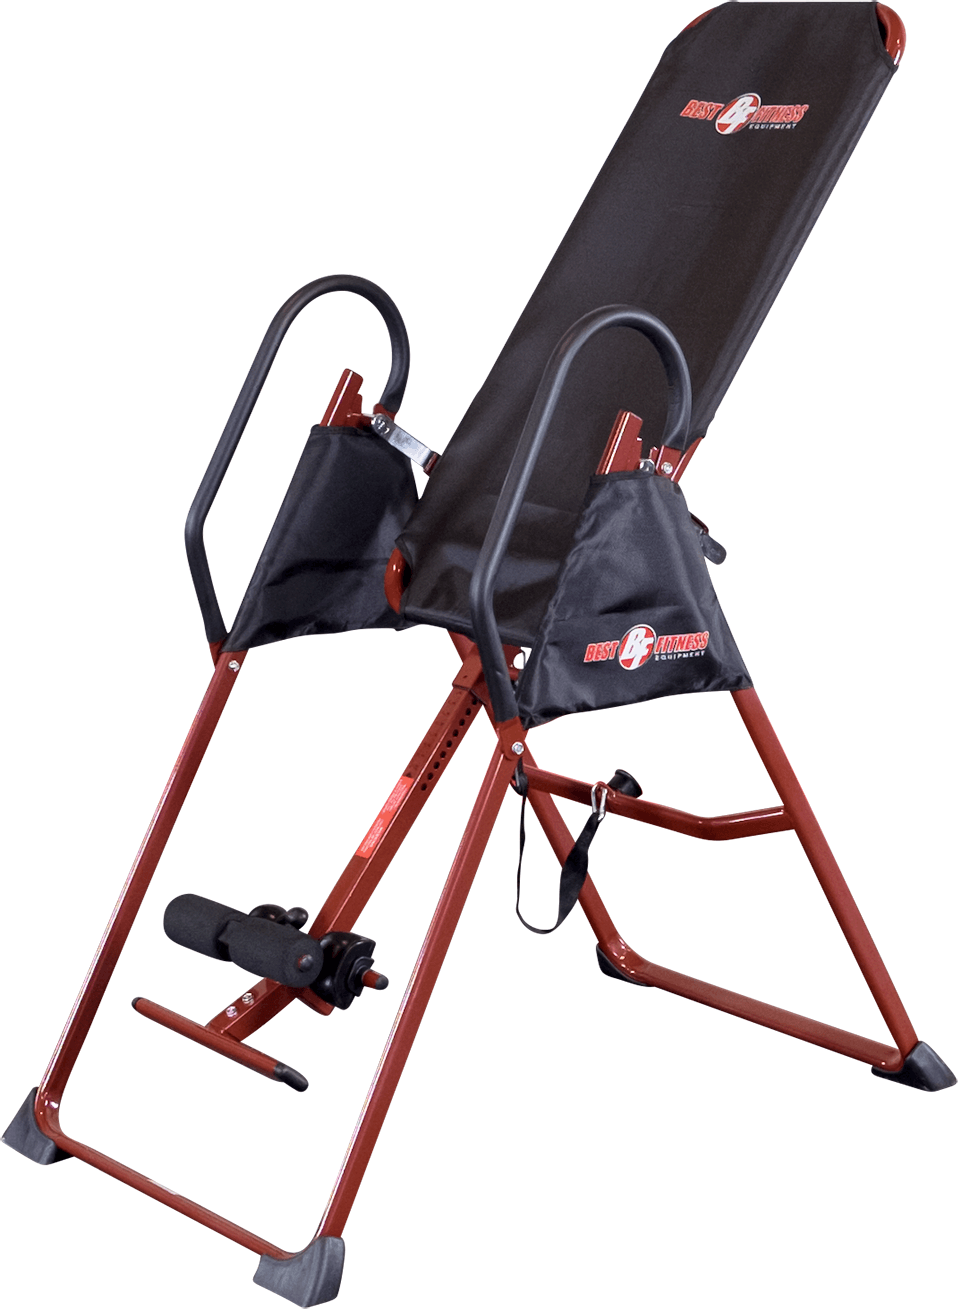 Afbeelding van Body-Solid Inversion Table Trainingsbank